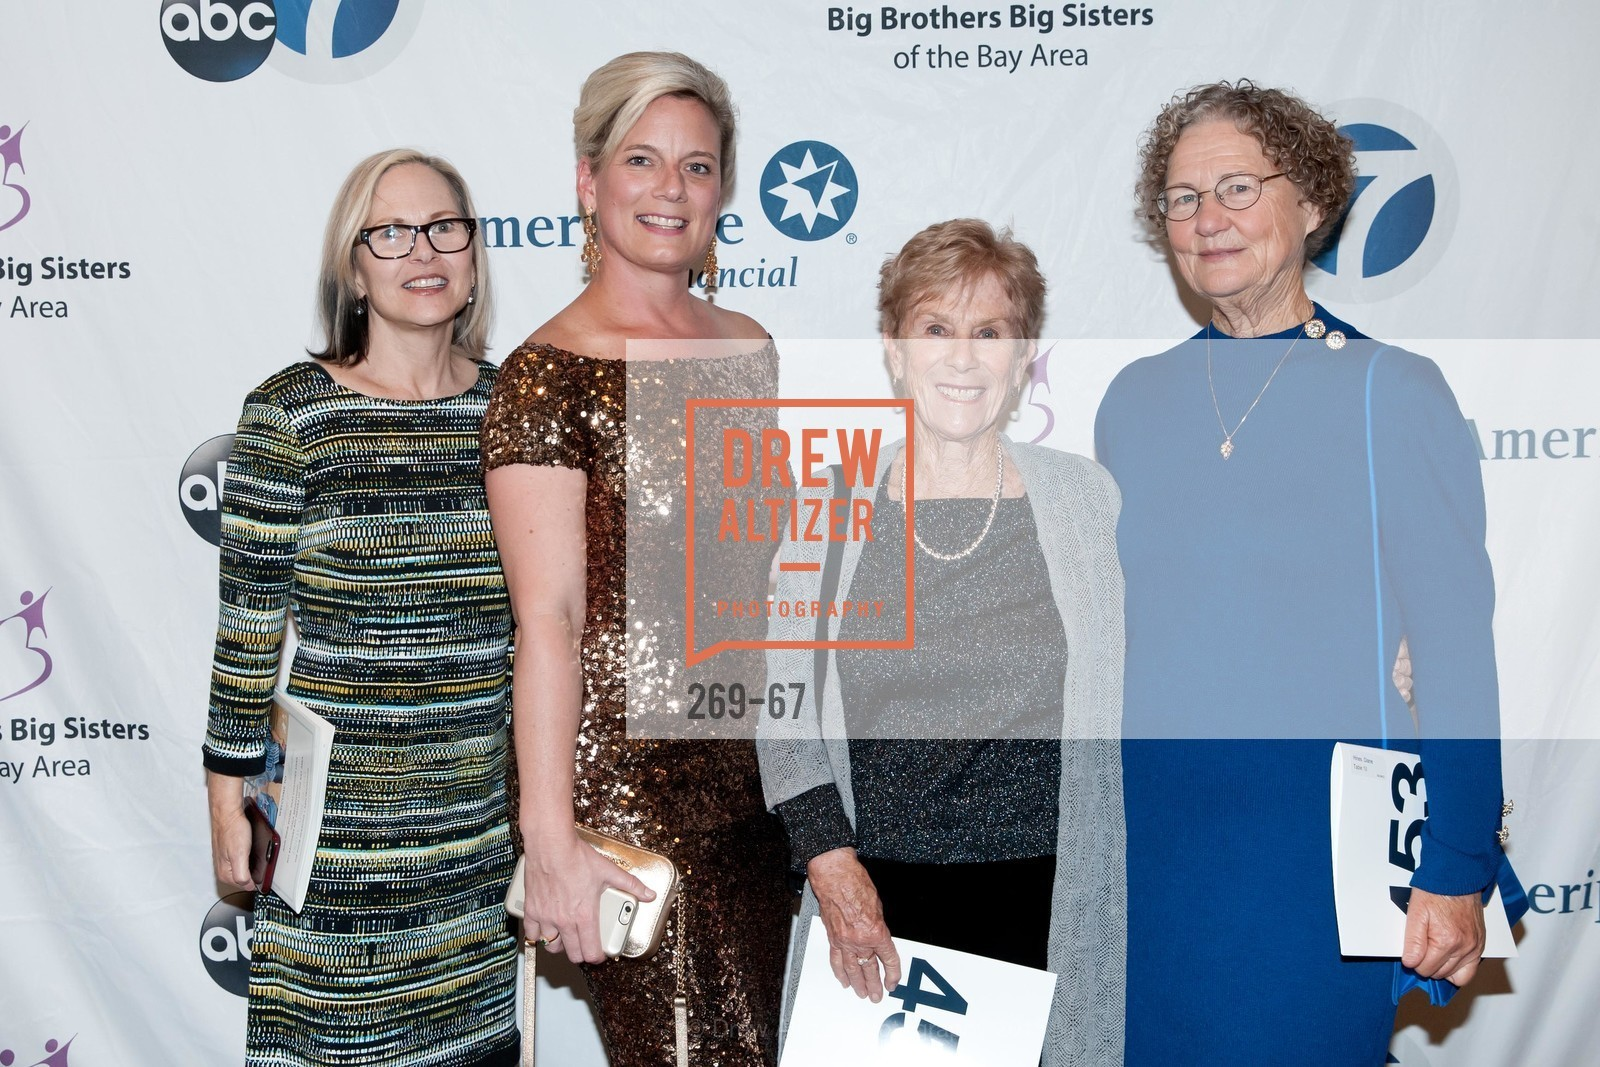 Joan Yokom, Michelle Alberda, Mary Ann Garvey, Diane Handes, Celebrating Mentors Gala, Four Seasons SF, April 24th, 2015,Drew Altizer, Drew Altizer Photography, full-service agency, private events, San Francisco photographer, photographer california